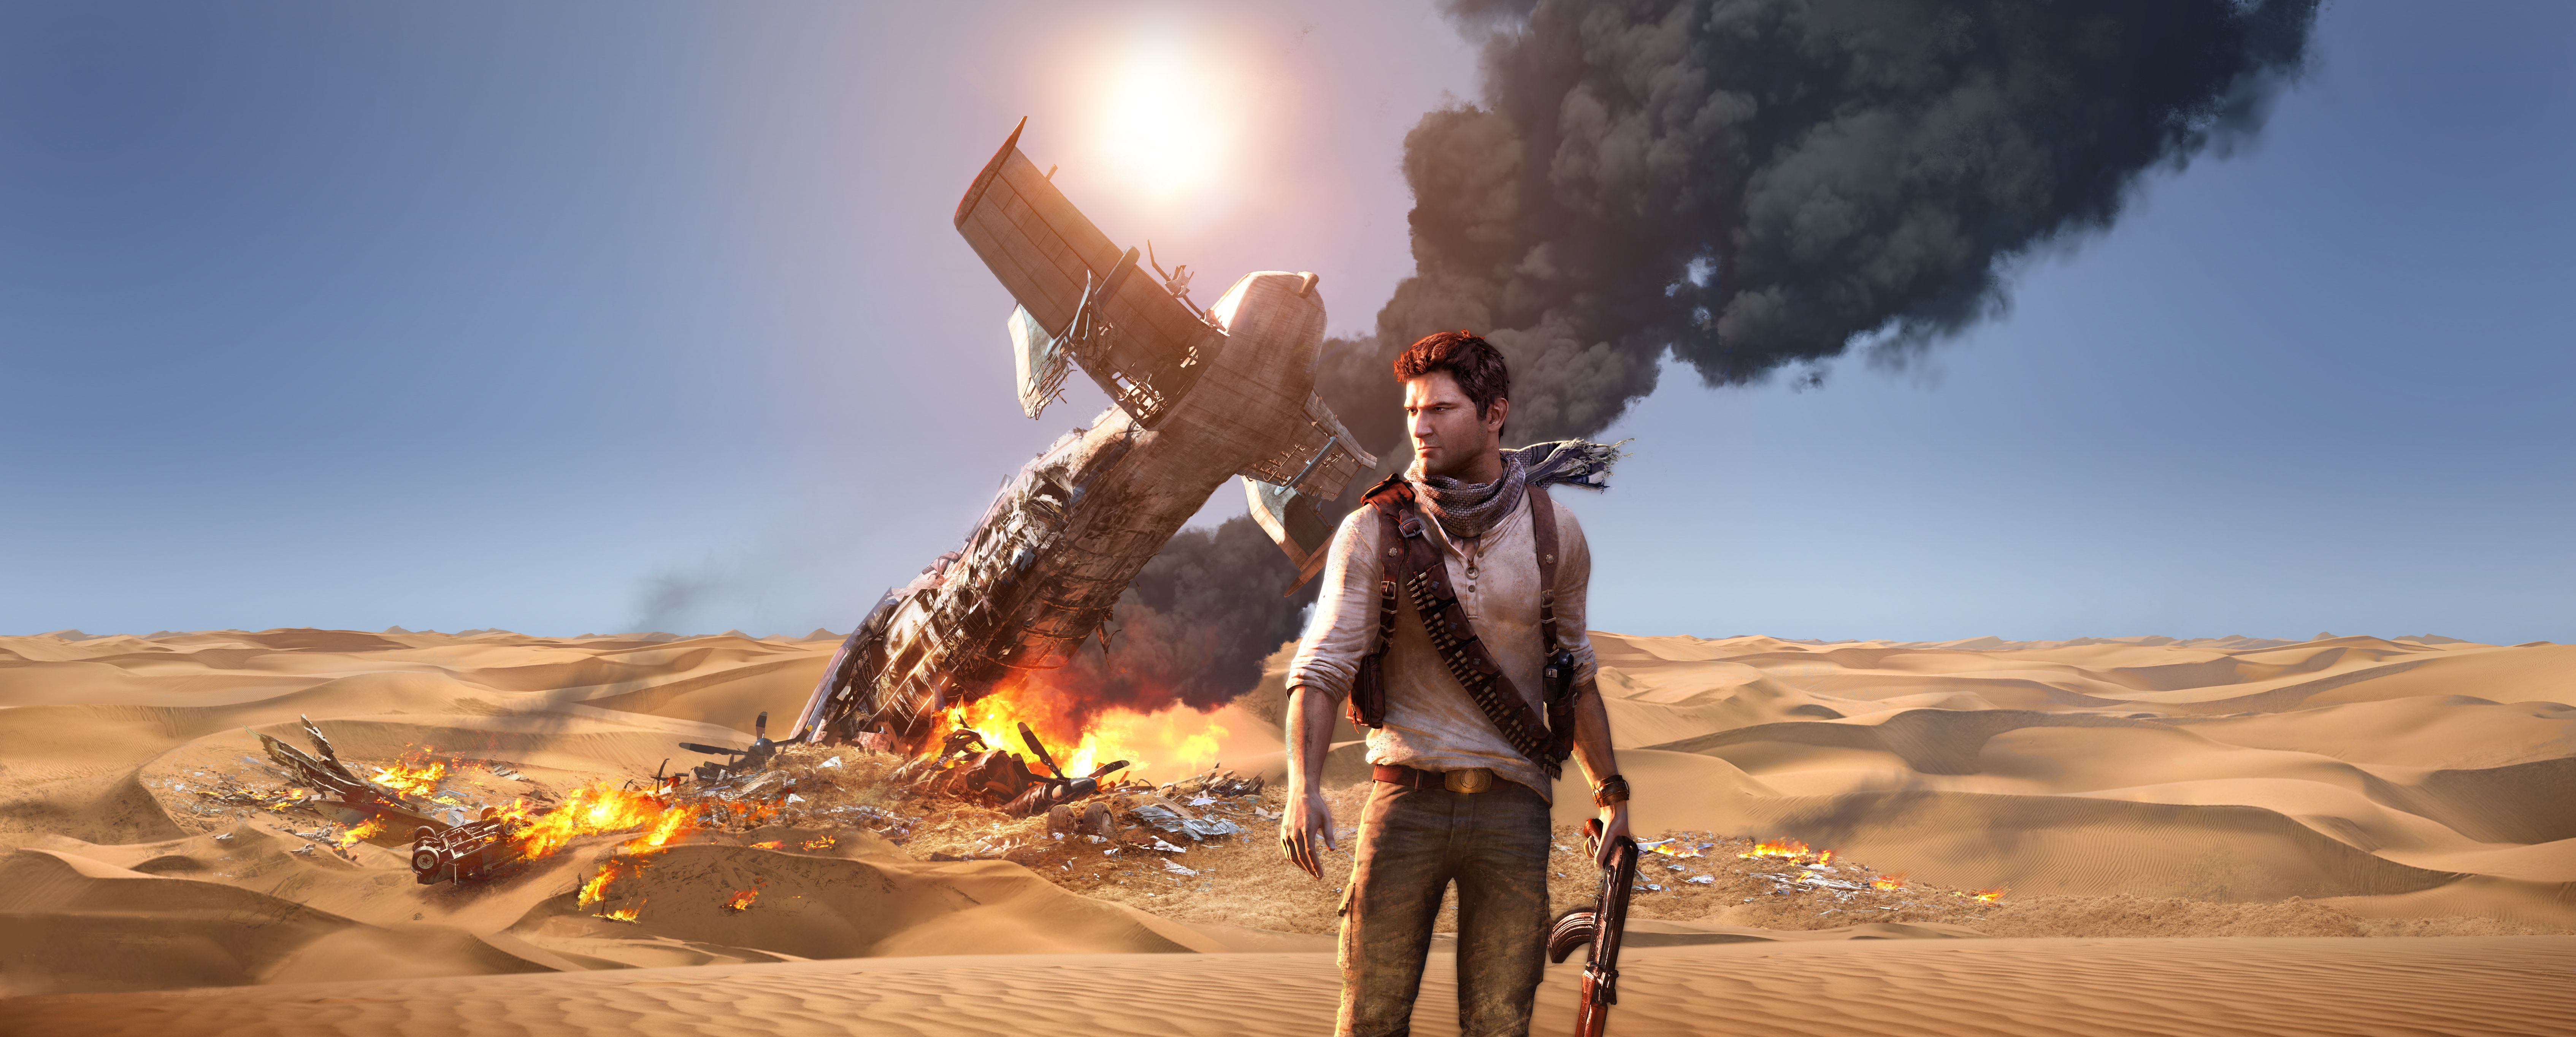 Uncharted 3 Game Wallpaper Hd Games 4k Wallpapers Images Photos